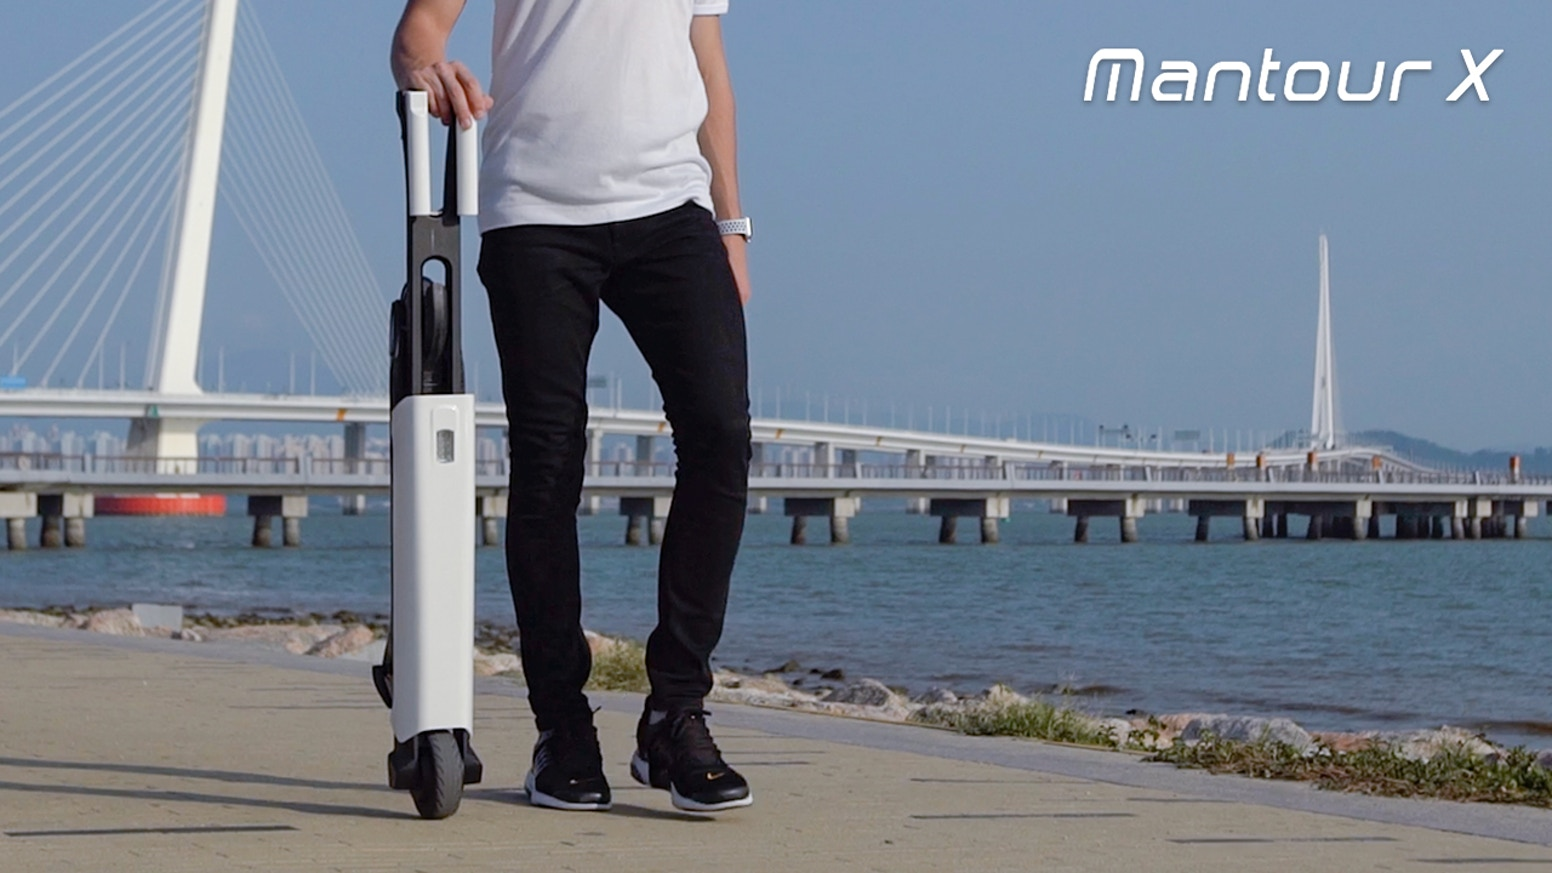 Made of carbon fiber & aluminum alloy, the Mantour X self-balancing e-scooter weights 16 lbs only ensuring high portability.